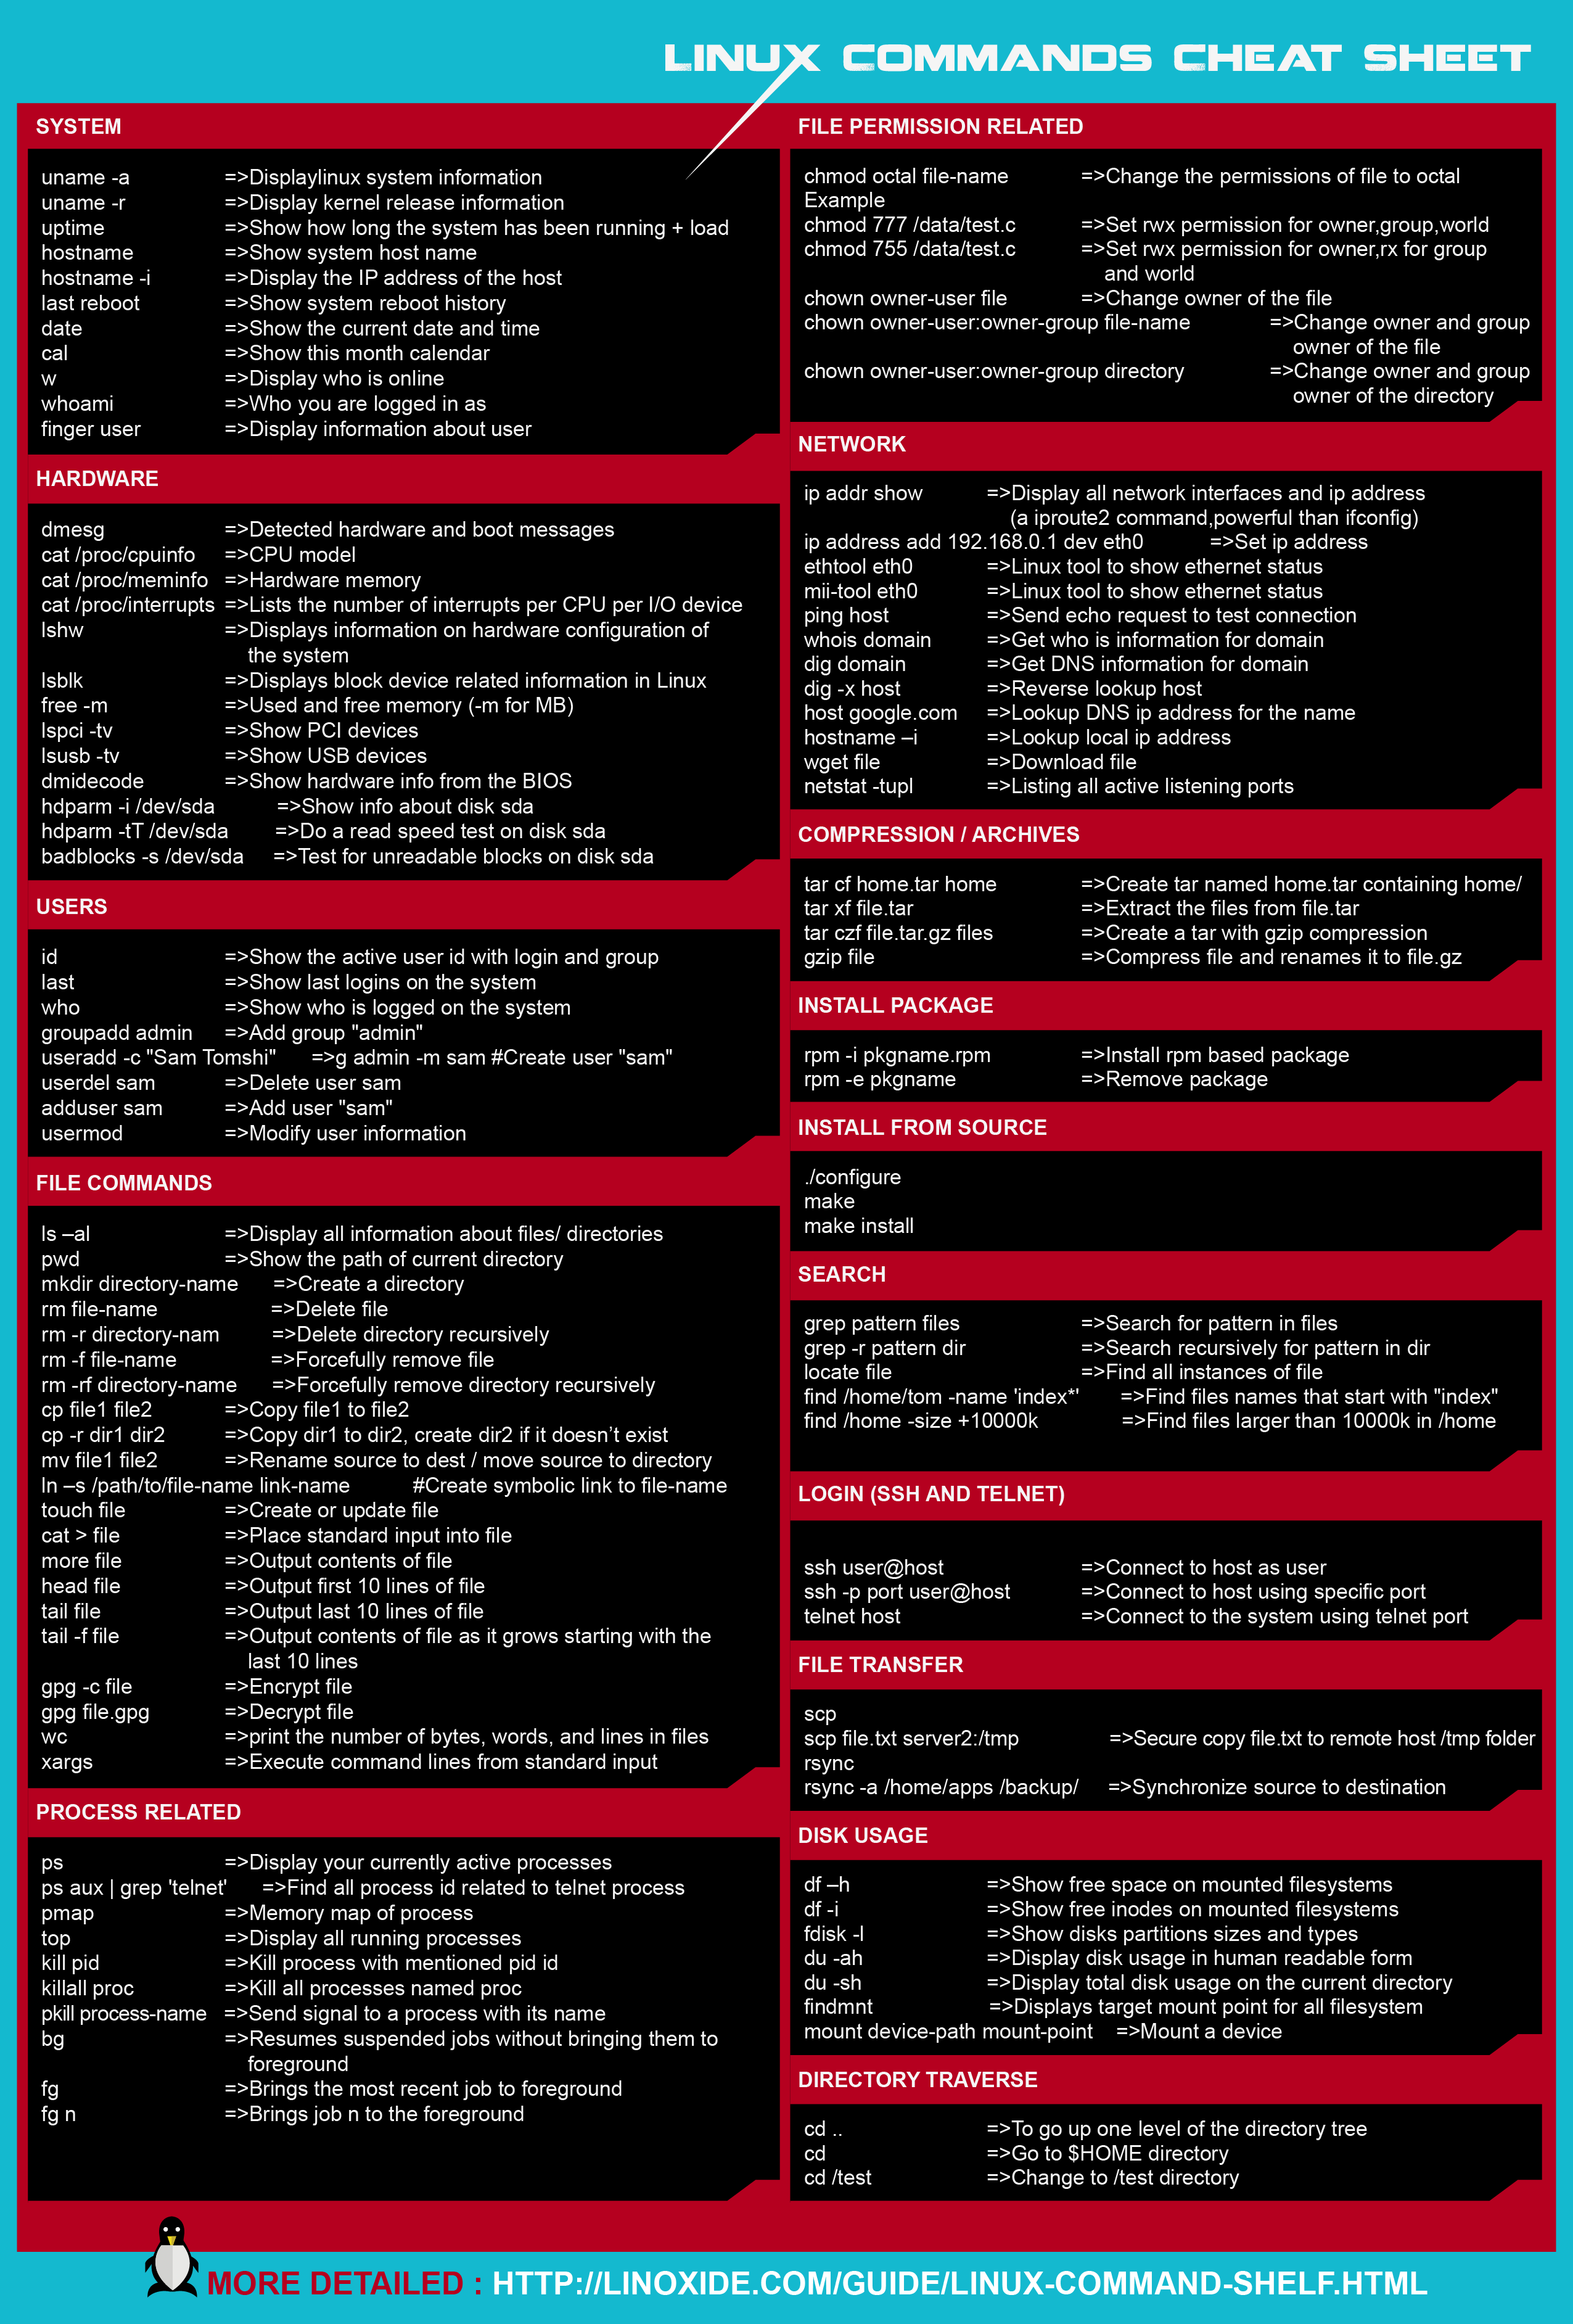 Linux cheat sheet algorithm pinterest linux linux commands cheat sheet in a well formatted image and pdf file command are categorized in different sections for the ease of better understanding baditri Gallery